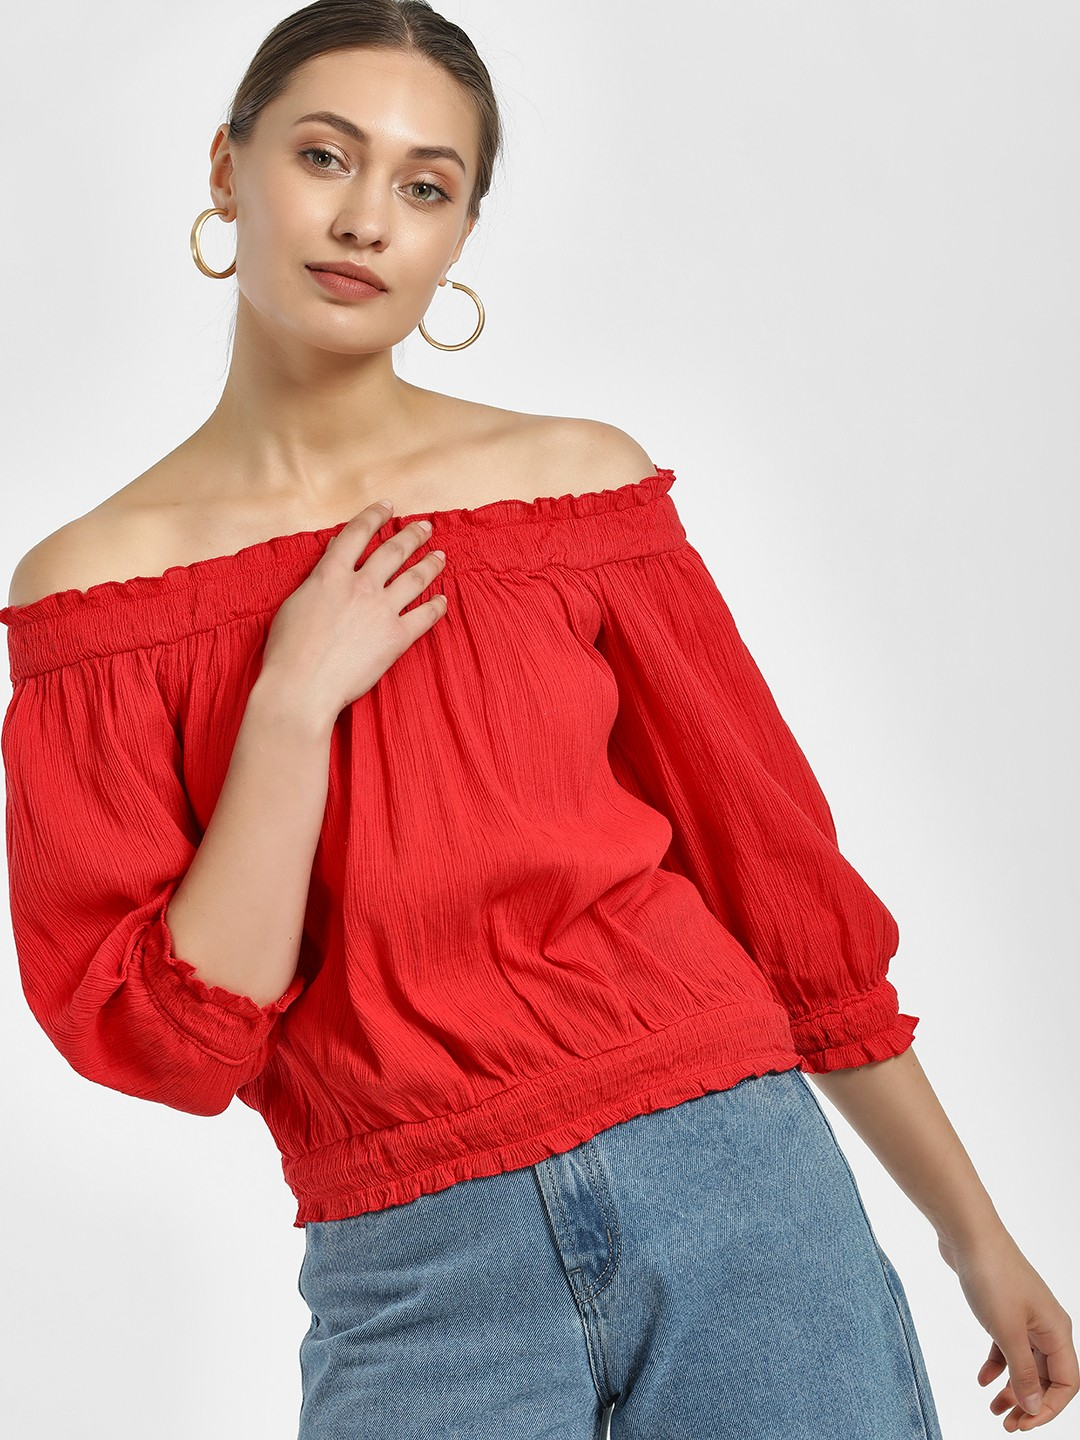 MIWAY Red Smocked & Woven Bandeau Top 1